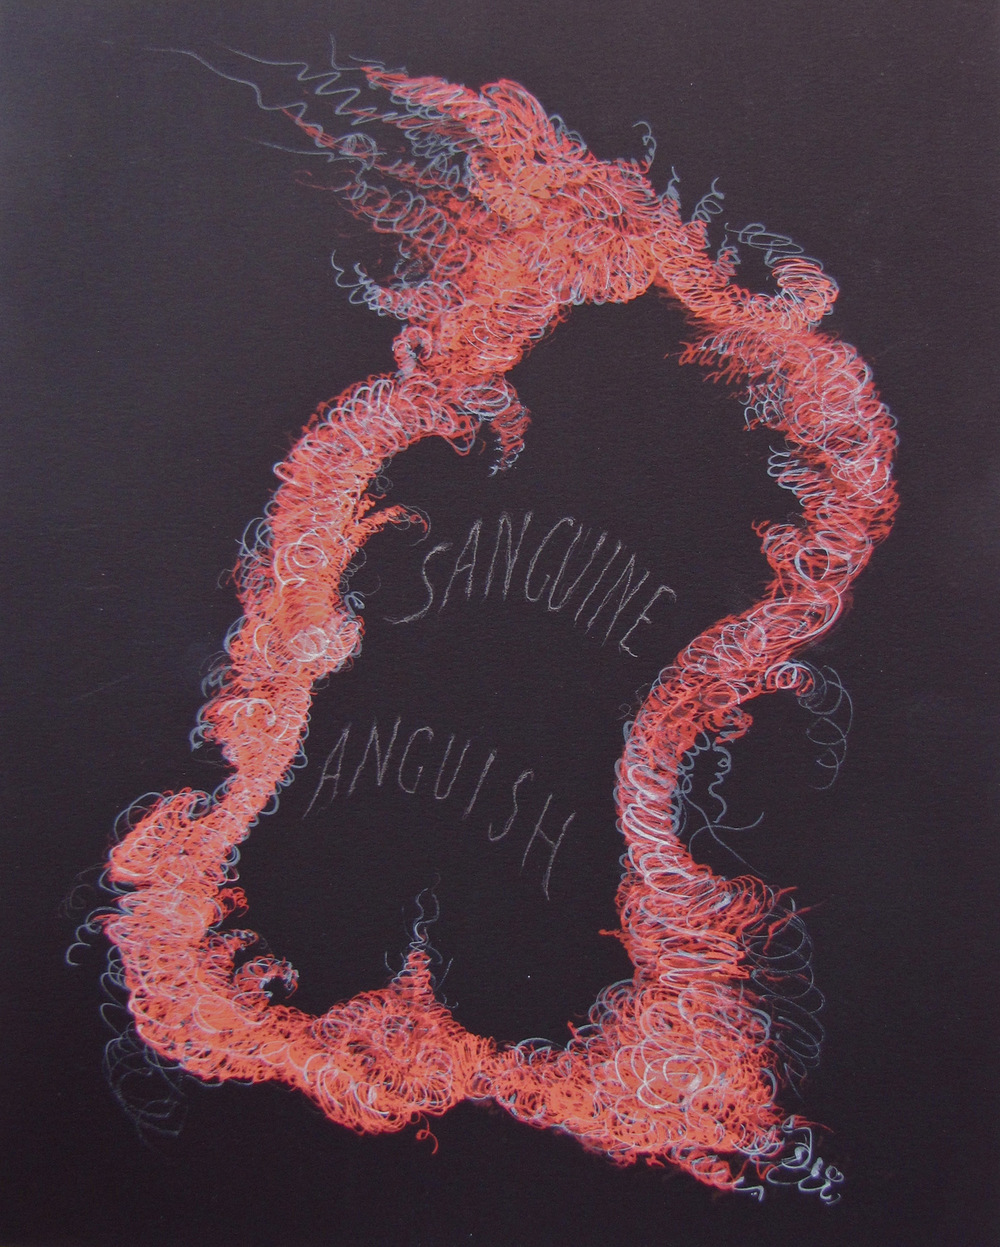 Sanguine anguish 2011